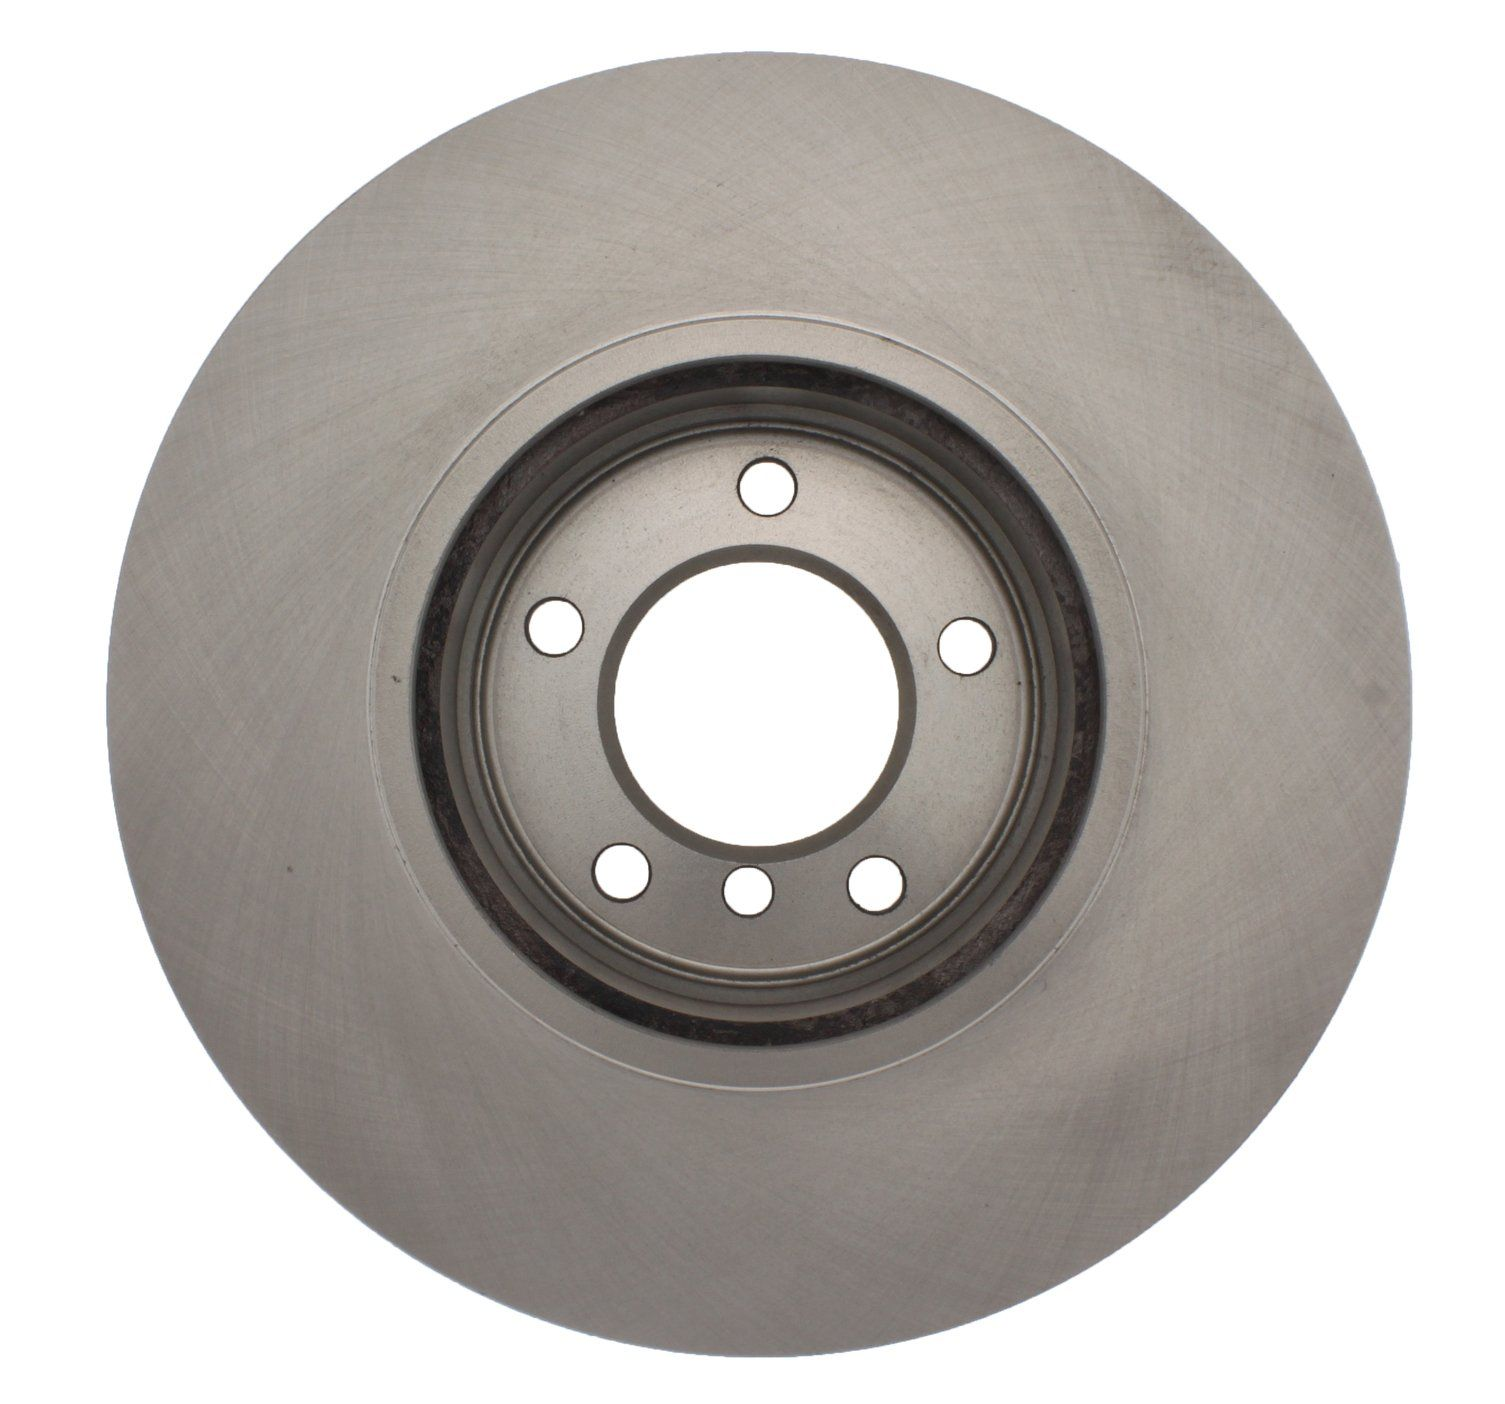 2009 bmw 535i xdrive disc brake rotor front centric 121 34070